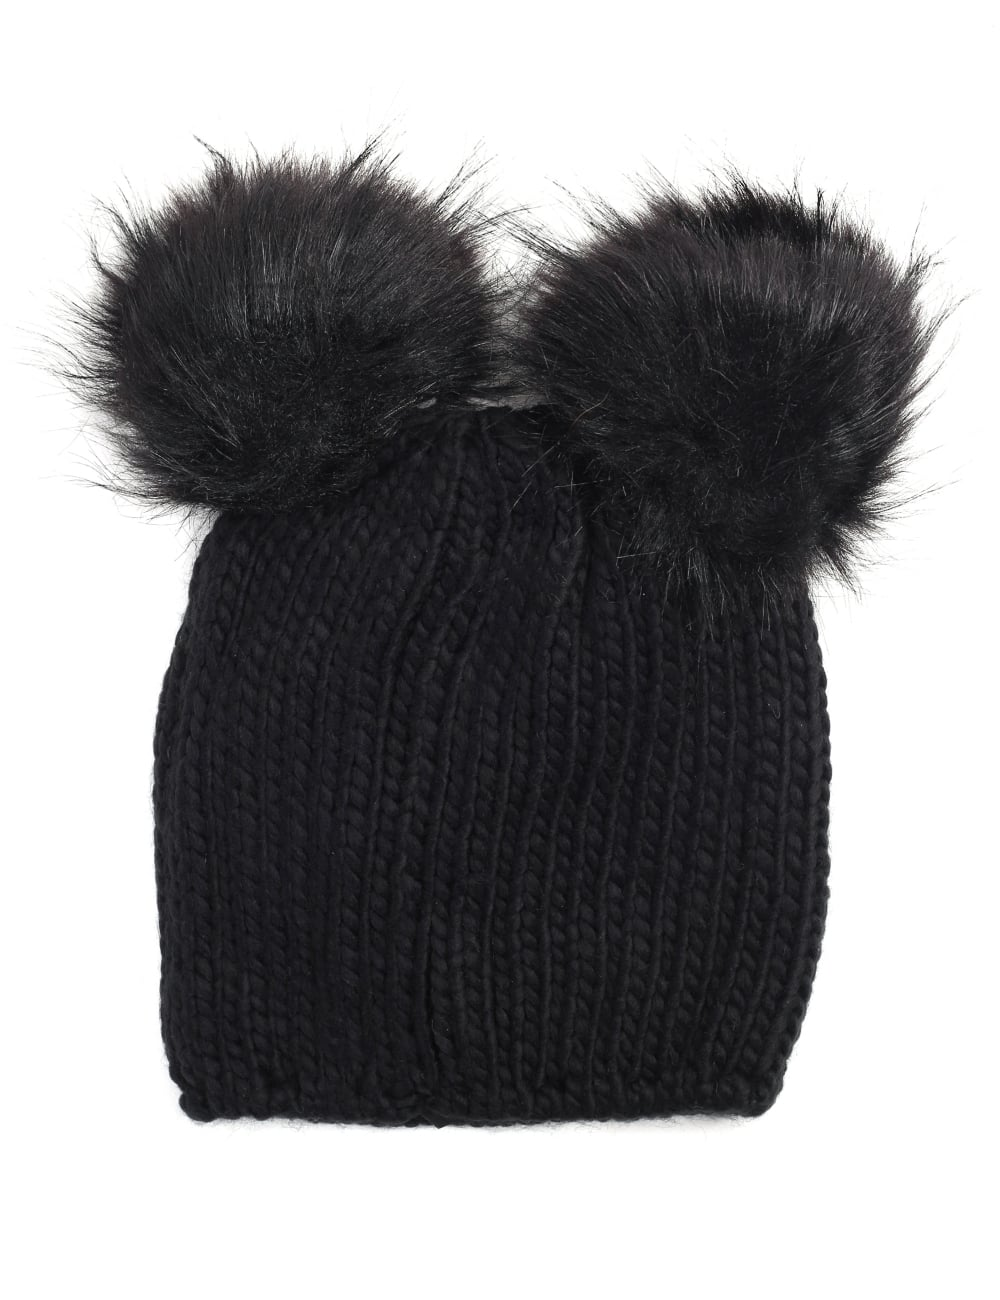 248666b61 RINO & PELLE Women's Double Faux Fur Pom Pom Hat